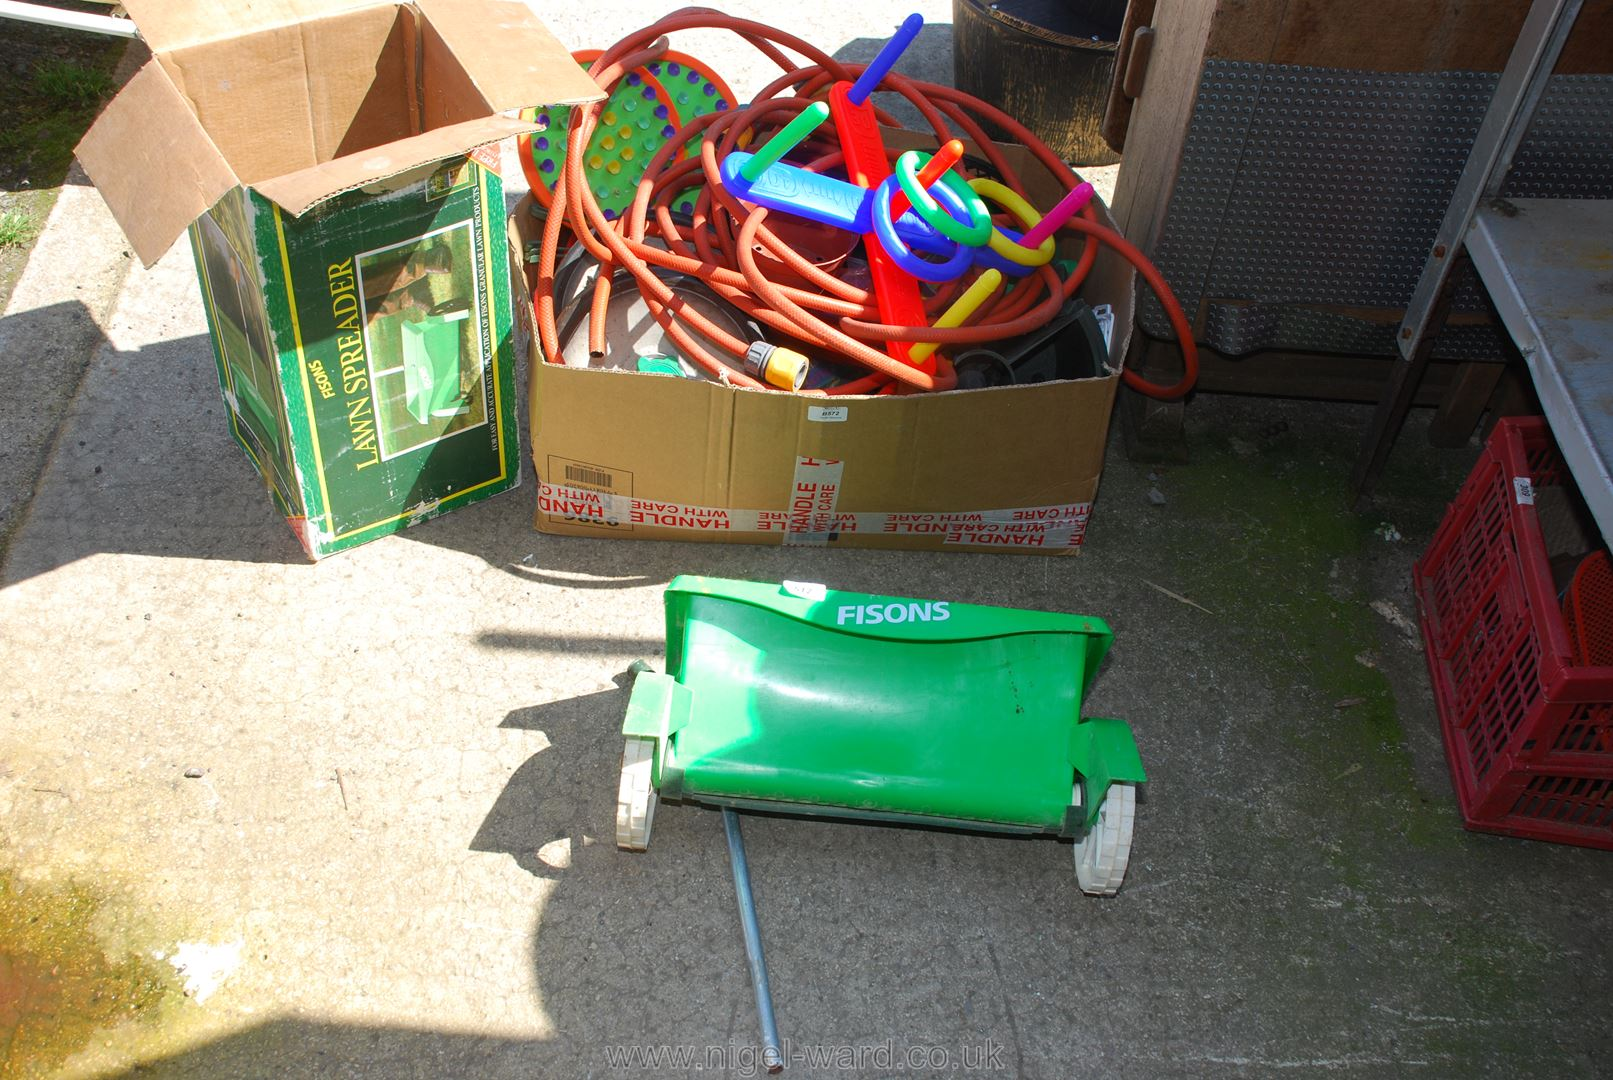 A quantity of garden hose, children's outside toys, hose lock fittings, lawn spreader, etc.